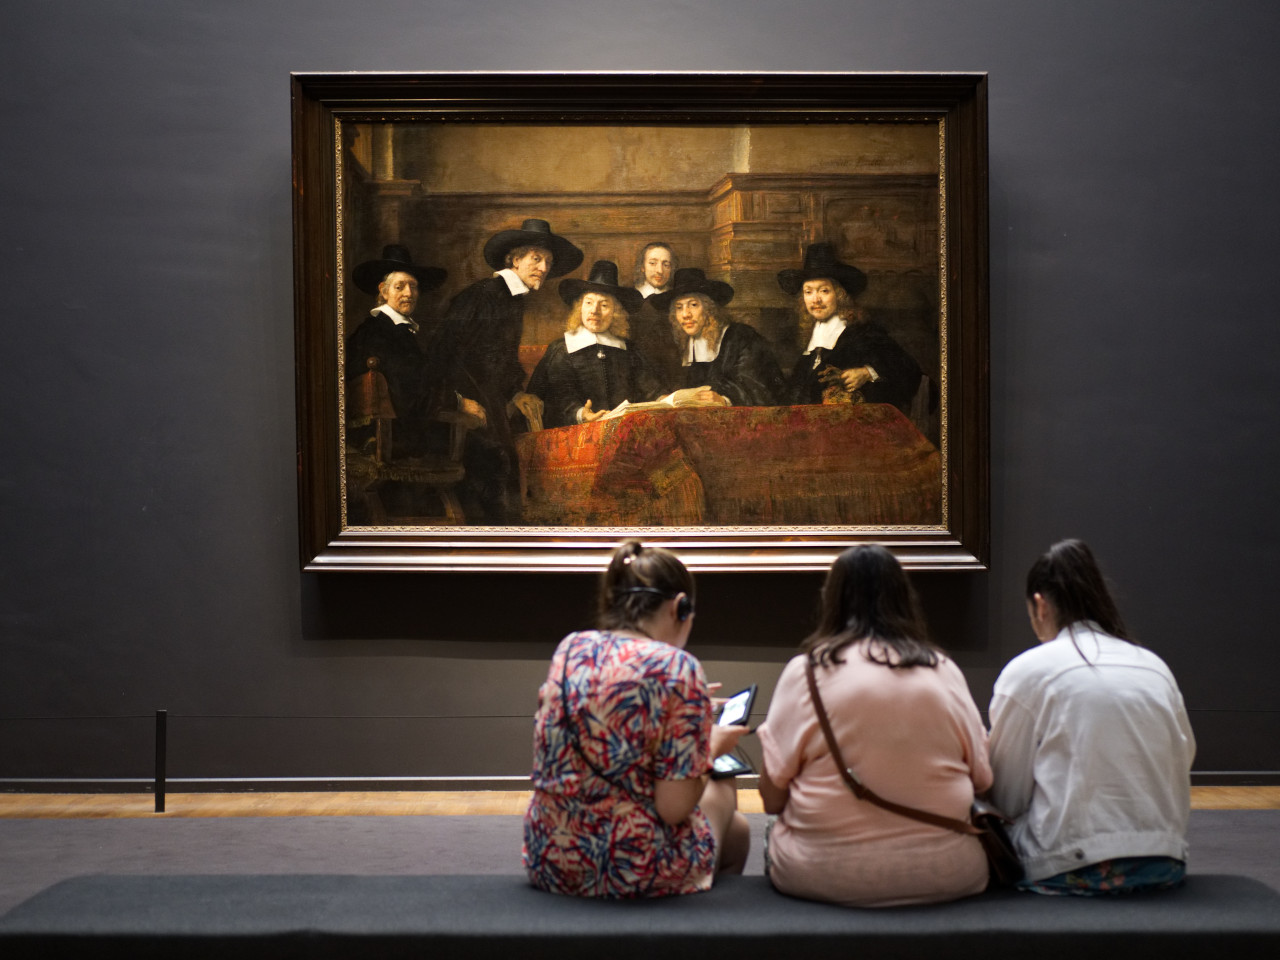 Rijksmuseum Amsterdam. Discover the best museums in Amsterdam from Vincent van Gogh to Rijksmuseum, from MOCO Museum to Anne Frank, from Cheesemuseum to Bags and Purses Museum. #amsterdam #netherlands #museum #art #travel #europe